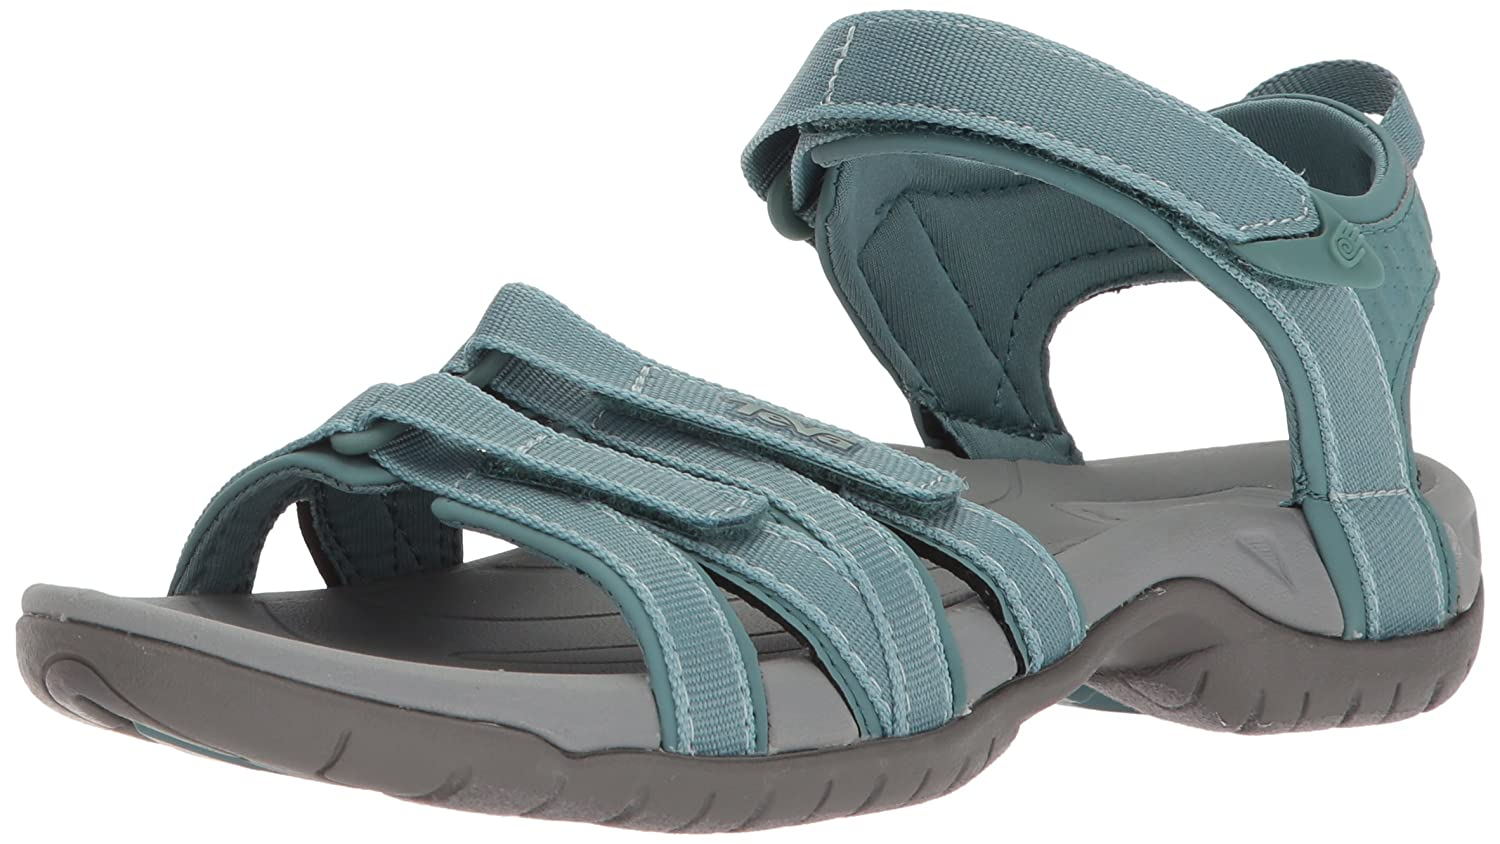 Teva Women's Tirra Athletic Sandal B071WML54V 11 B(M) US|North Atlantic